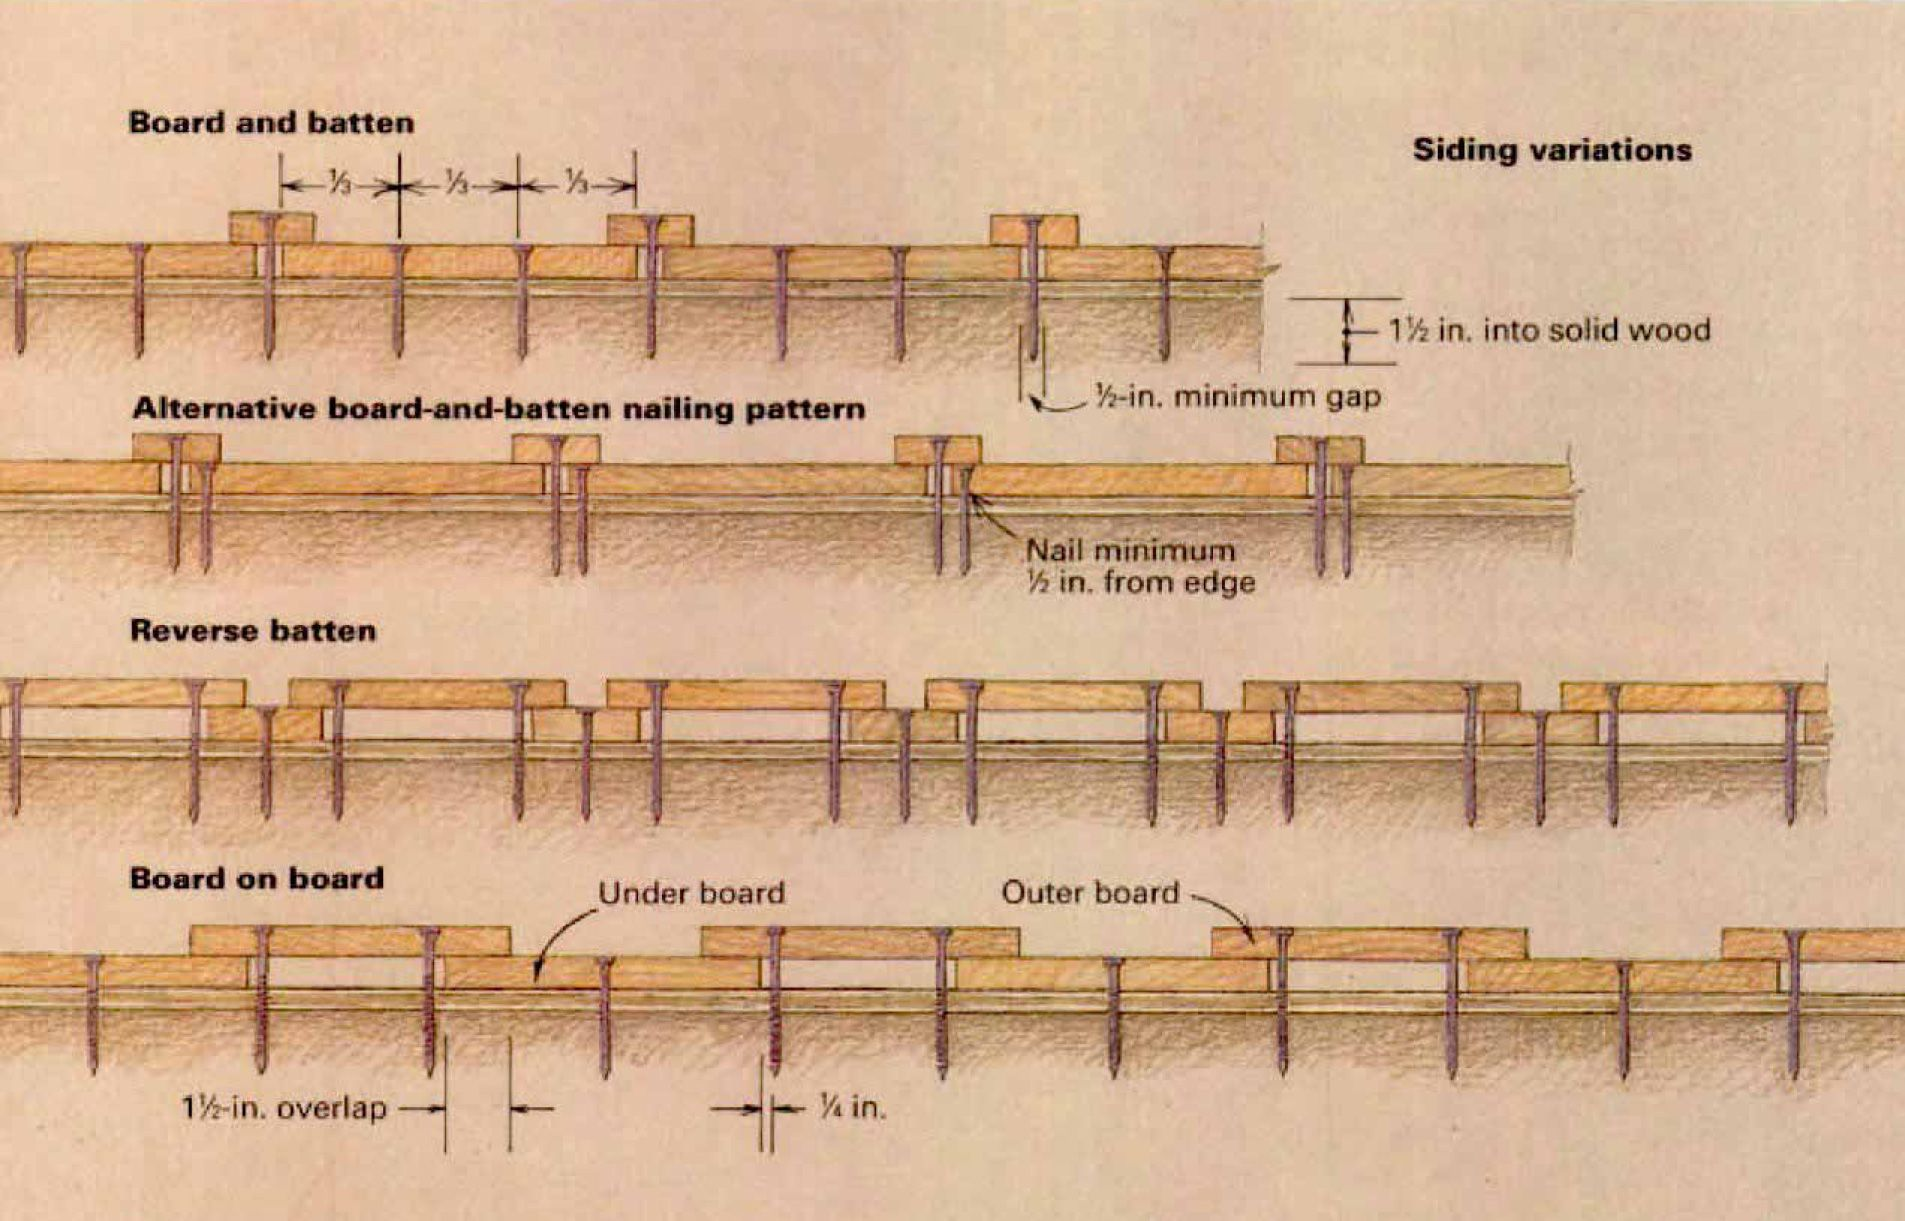 Horizontal Board And Batten Siding There Are Many Ways To Nail Board And Batten Siding Here